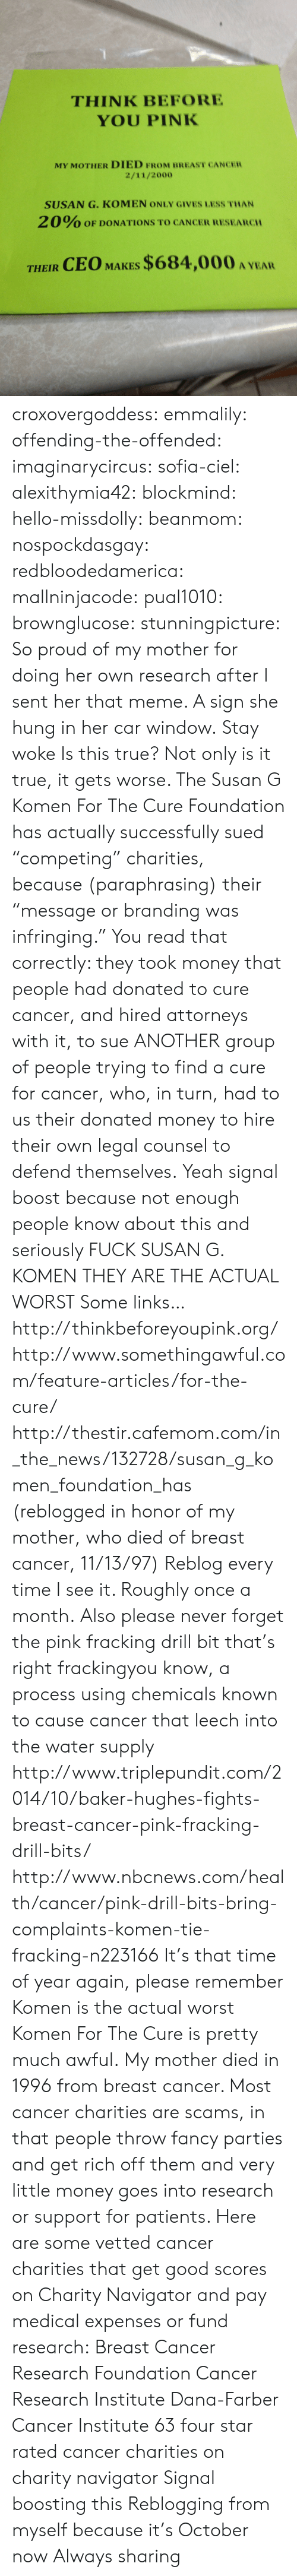 "branding: THINK BEFORE  YOU PINK  MY MOTHER DIED FROM BREAST CANCER  2/11/2000  SUSAN G. KOMEN ONLY GIVES LESS THAN  2 0% OF DONATIONS TO CANCER RESEARCH  THEIR CEO MAKES $684,000 A YEA croxovergoddess: emmalily:  offending-the-offended:  imaginarycircus:  sofia-ciel:  alexithymia42:  blockmind:  hello-missdolly:  beanmom:  nospockdasgay:  redbloodedamerica:  mallninjacode:  pual1010:  brownglucose:  stunningpicture:  So proud of my mother for doing her own research after I sent her that meme. A sign she hung in her car window.  Stay woke  Is this true?  Not only is it true, it gets worse. The Susan G Komen For The Cure Foundation has actually successfully sued ""competing"" charities, because (paraphrasing) their ""message or branding was infringing."" You read that correctly: they took money that people had donated to cure cancer, and hired attorneys with it, to sue ANOTHER group of people trying to find a cure for cancer, who, in turn, had to us their donated money to hire their own legal counsel to defend themselves.    Yeah signal boost because not enough people know about this and seriously FUCK SUSAN G. KOMEN THEY ARE THE ACTUAL WORST  Some links… http://thinkbeforeyoupink.org/ http://www.somethingawful.com/feature-articles/for-the-cure/ http://thestir.cafemom.com/in_the_news/132728/susan_g_komen_foundation_has (reblogged in honor of my mother, who died of breast cancer, 11/13/97)  Reblog every time I see it. Roughly once a month.  Also please never forget the pink fracking drill bit that's right frackingyou know, a process using chemicals known to cause cancer that leech into the water supply  http://www.triplepundit.com/2014/10/baker-hughes-fights-breast-cancer-pink-fracking-drill-bits/ http://www.nbcnews.com/health/cancer/pink-drill-bits-bring-complaints-komen-tie-fracking-n223166  It's that time of year again, please remember Komen is the actual worst  Komen For The Cure is pretty much awful.  My mother died in 1996 from breast cancer. Most cancer charities are scams, in that people throw fancy parties and get rich off them and very little money goes into research or support for patients. Here are some vetted cancer charities that get good scores on Charity Navigator and pay medical expenses or fund research: Breast Cancer Research Foundation Cancer Research Institute Dana-Farber Cancer Institute 63 four star rated cancer charities on charity navigator  Signal boosting this   Reblogging from myself because it's October now   Always sharing"